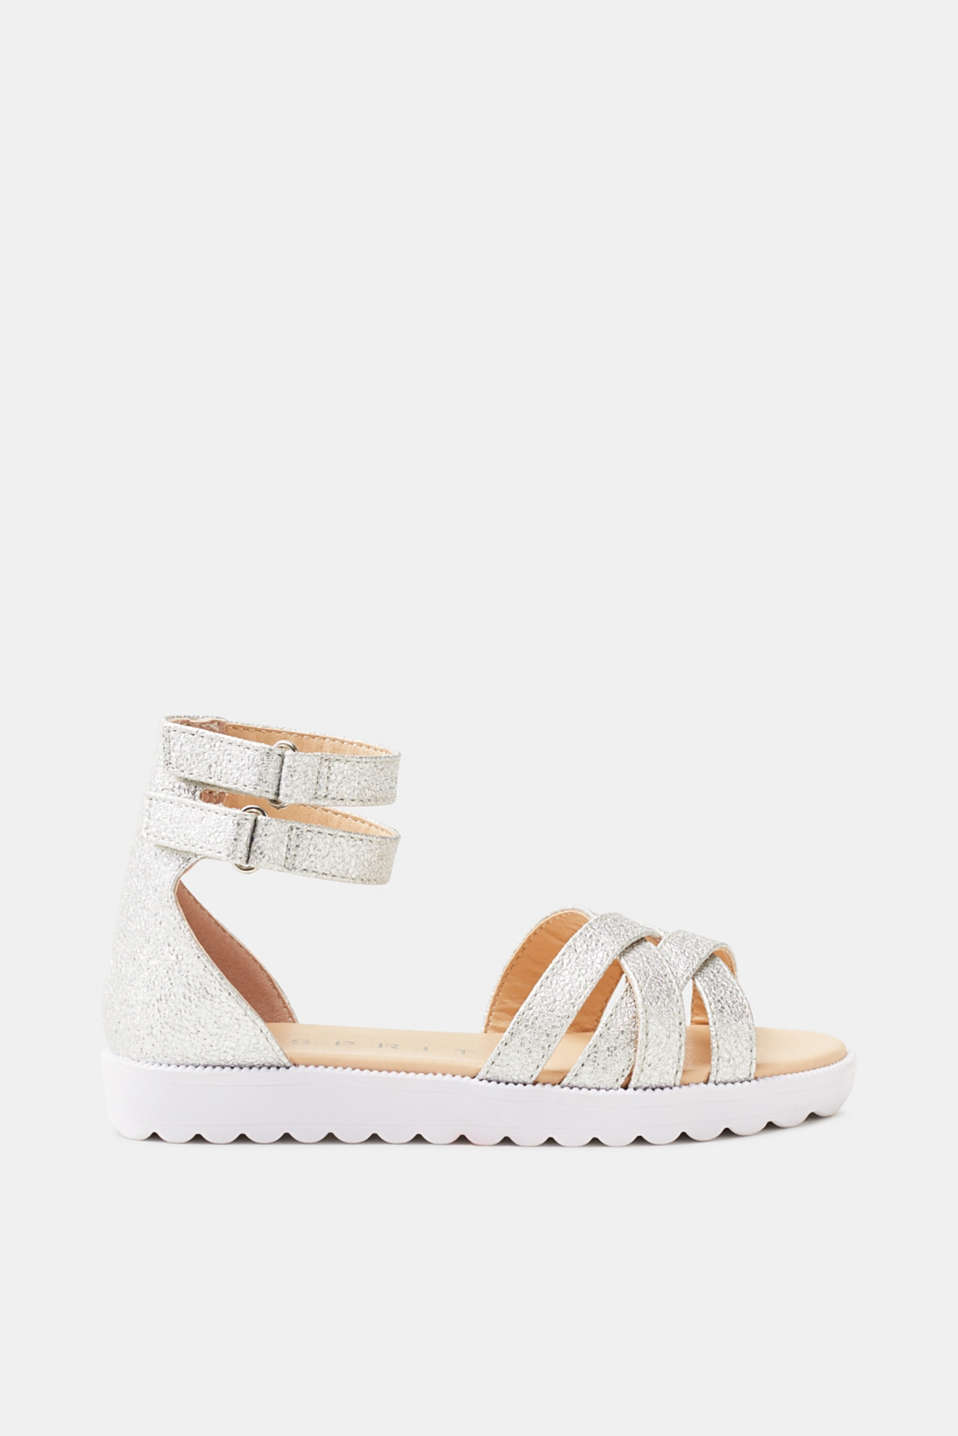 Esprit - Strappy sandals with a glitter effect